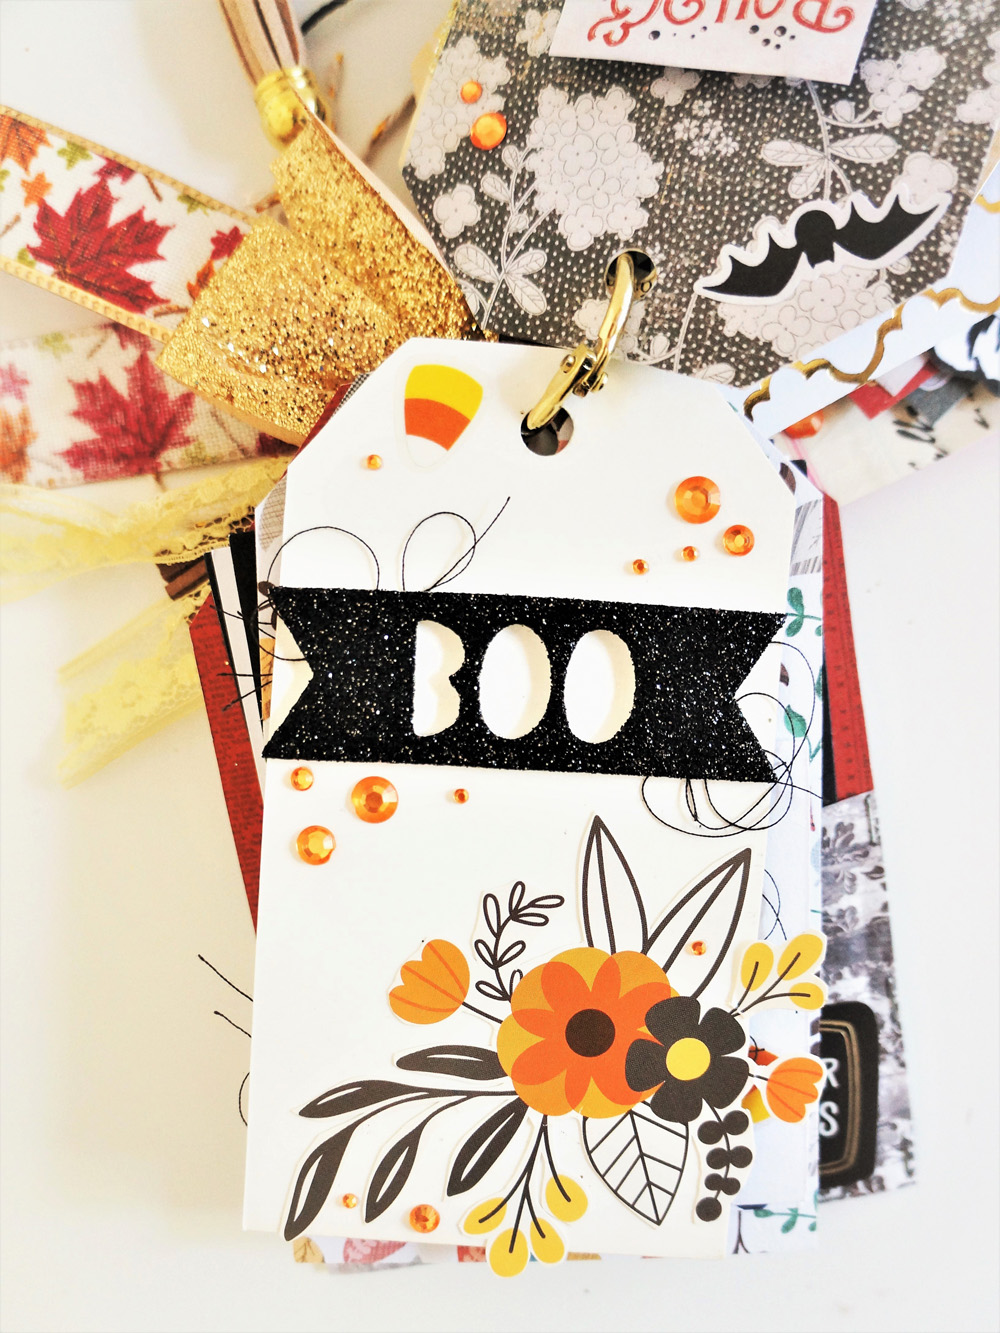 Outgoing Halloween Tag Mail for Penpals, Halloween Paper crafting by Laura Rahel (12).jpg